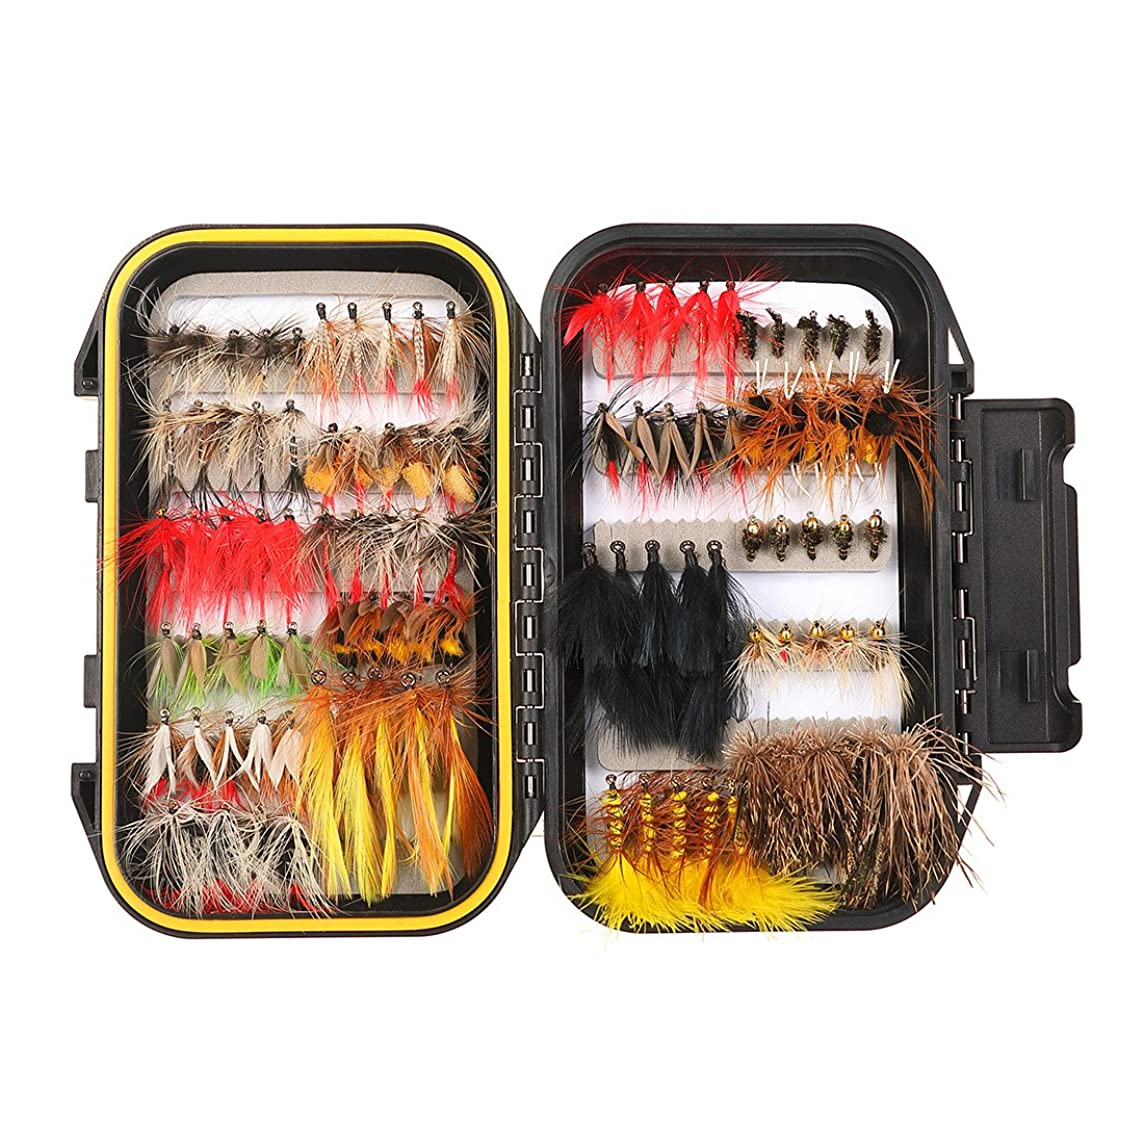 FISHINGSIR Fly Fishing Flies Kit - 64/100/110/120pcs Handmade Fly Fishing Lures - Dry/Wet Flies,Streamer, Nymph, Emerger with Waterproof Fly Box